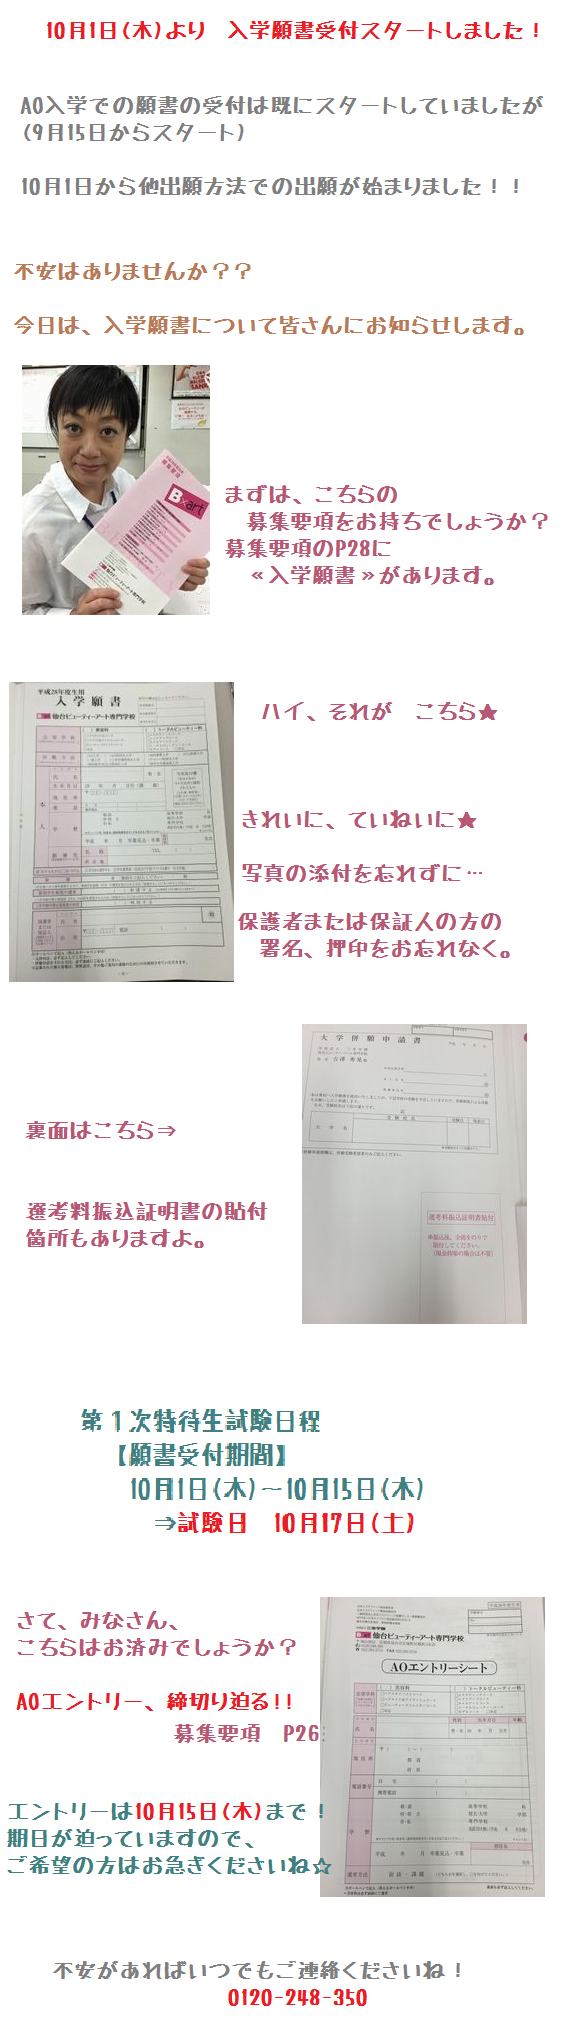 HP願書.png